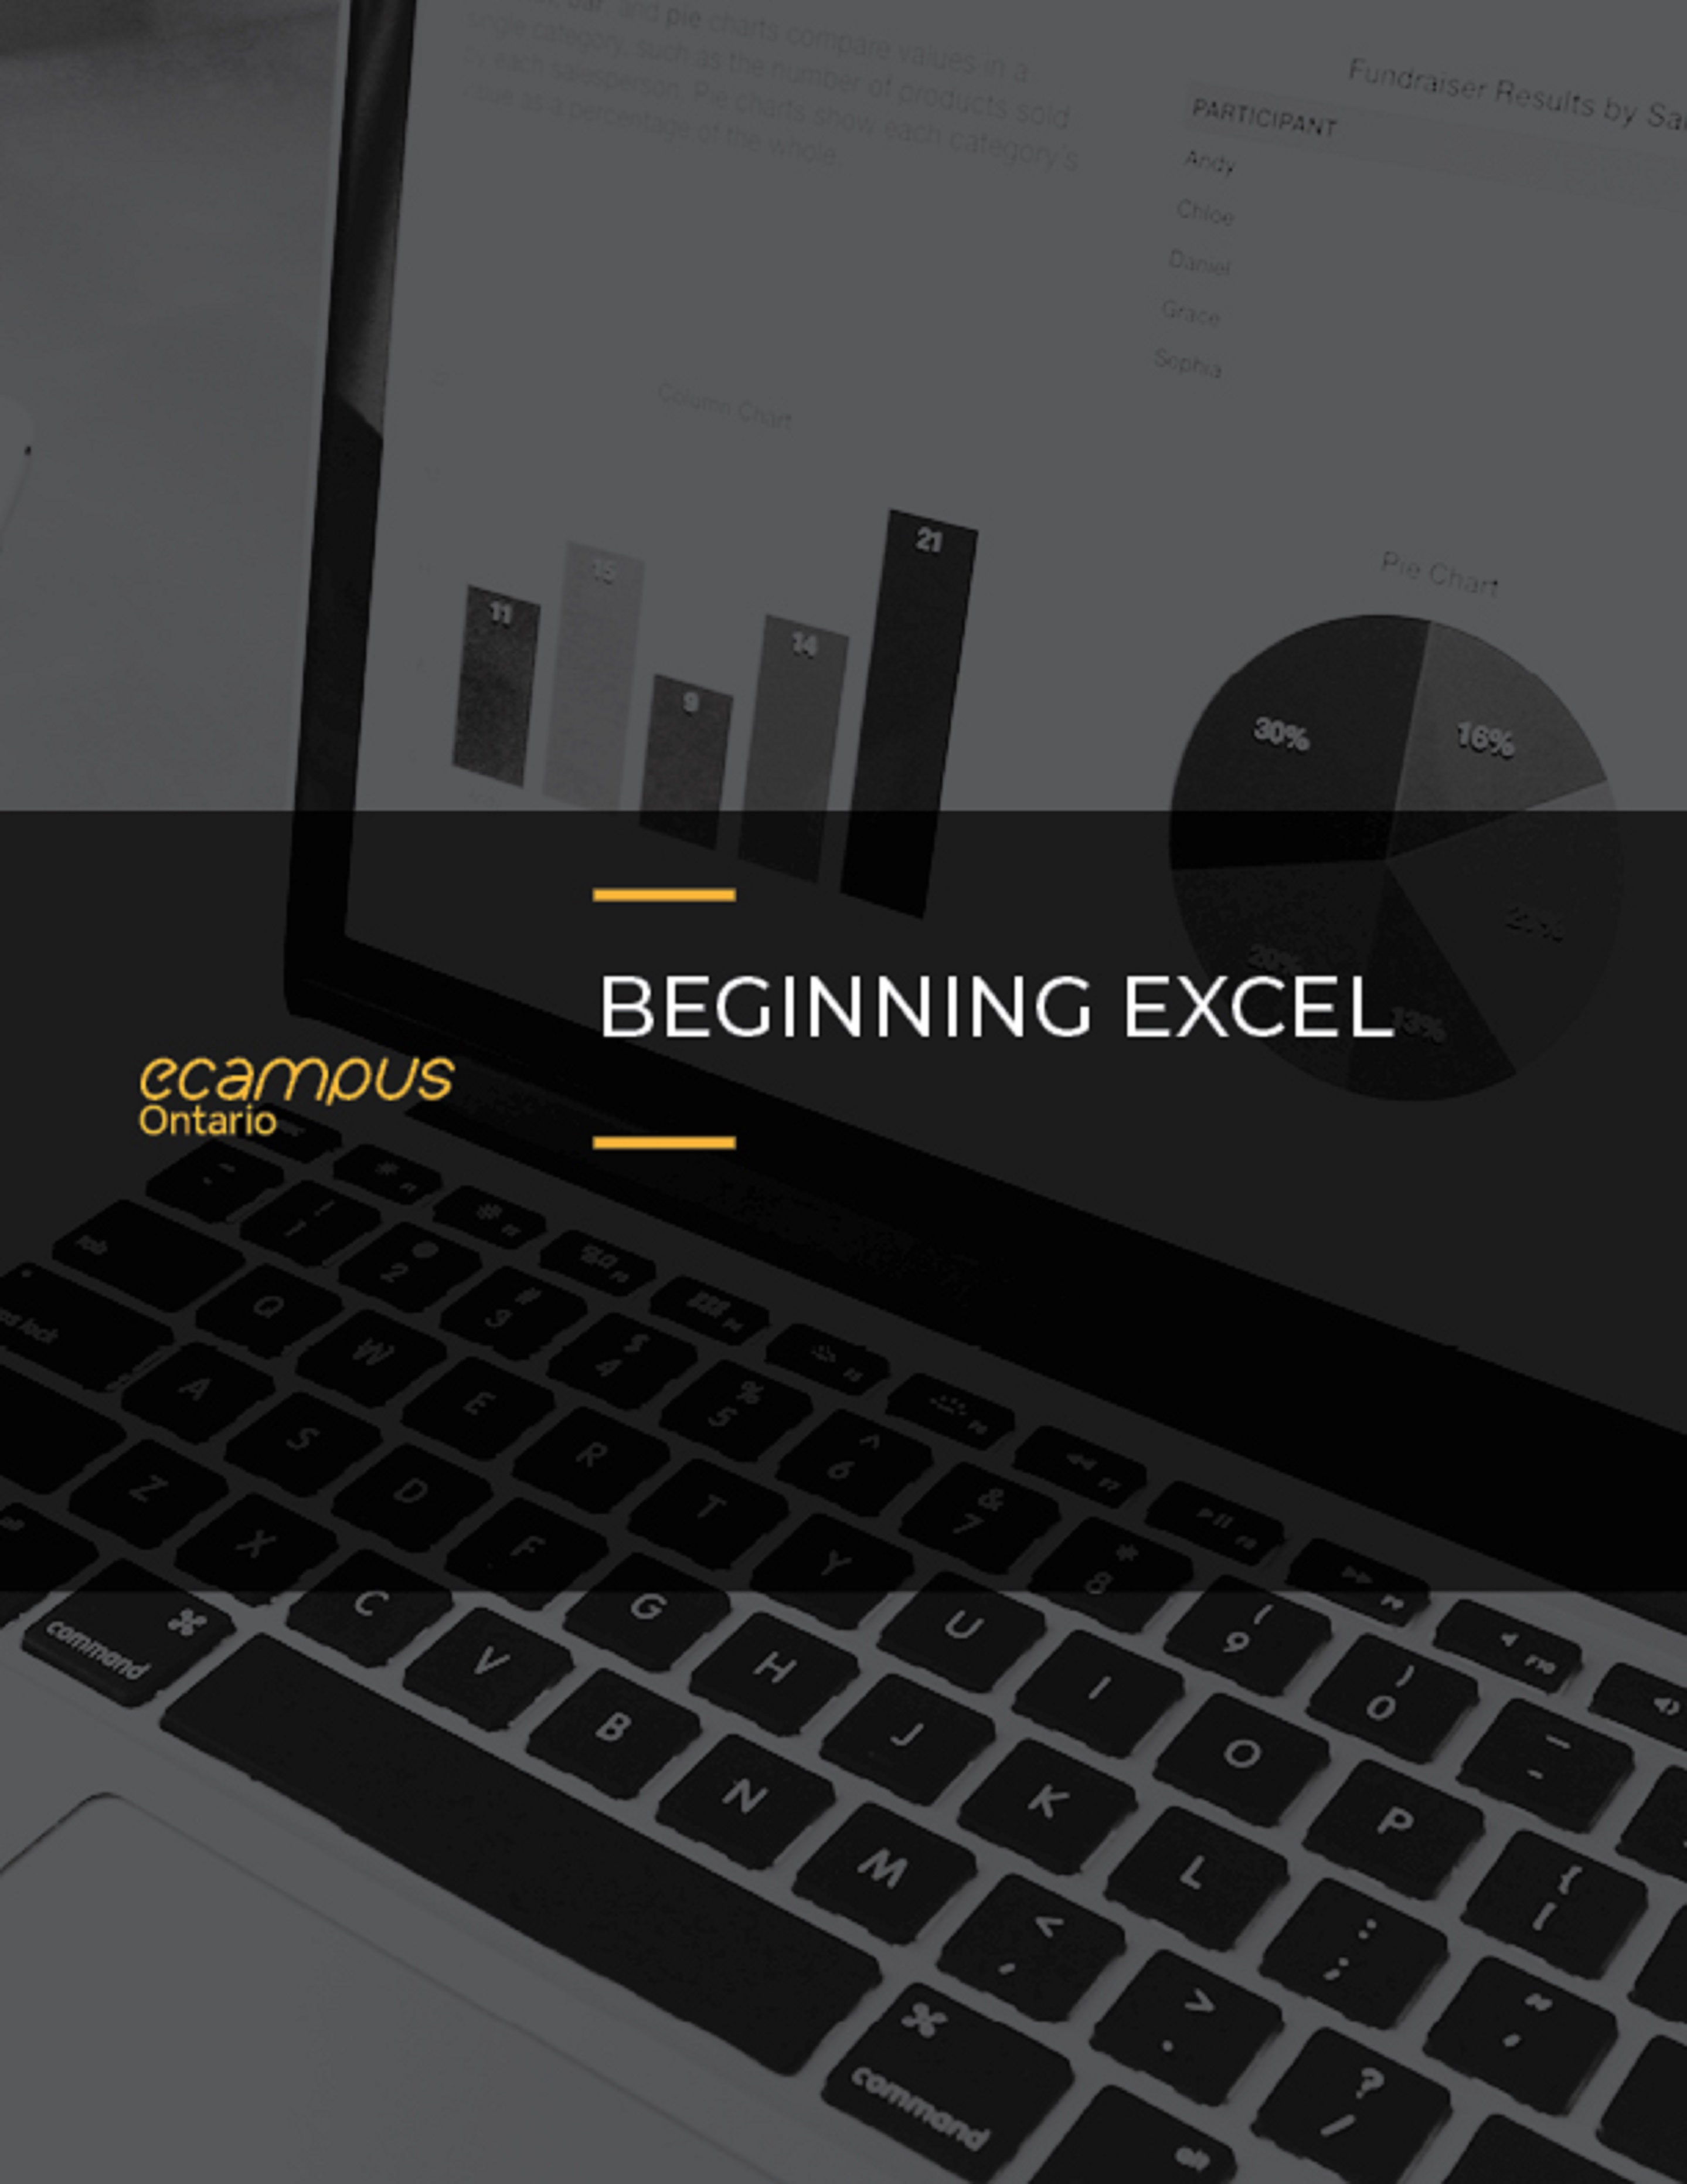 Beginning Excel Simple Book Publishing